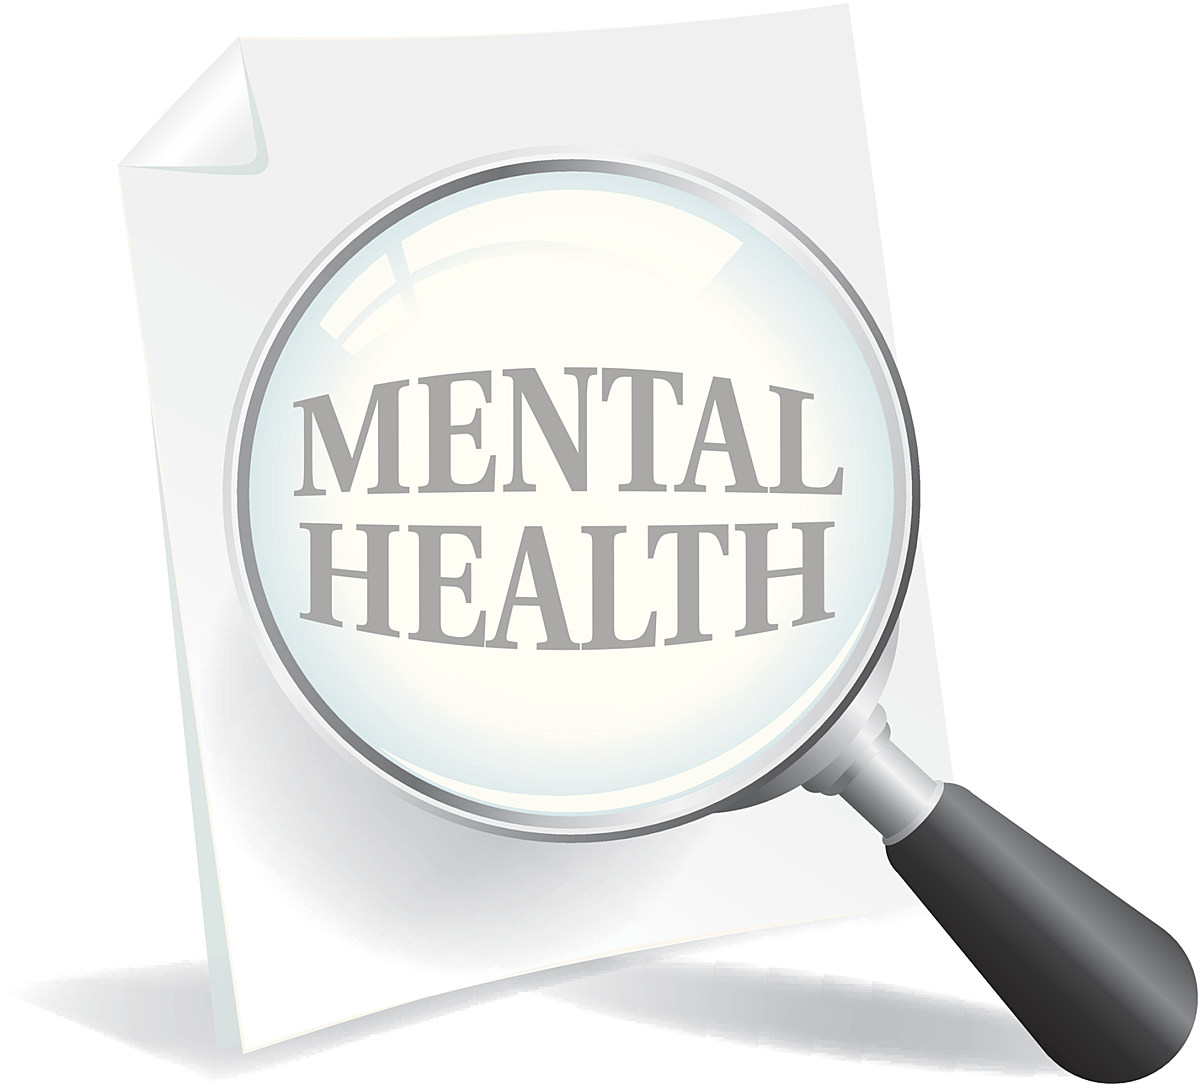 Child mental health — NJ experts on the dangers and signs